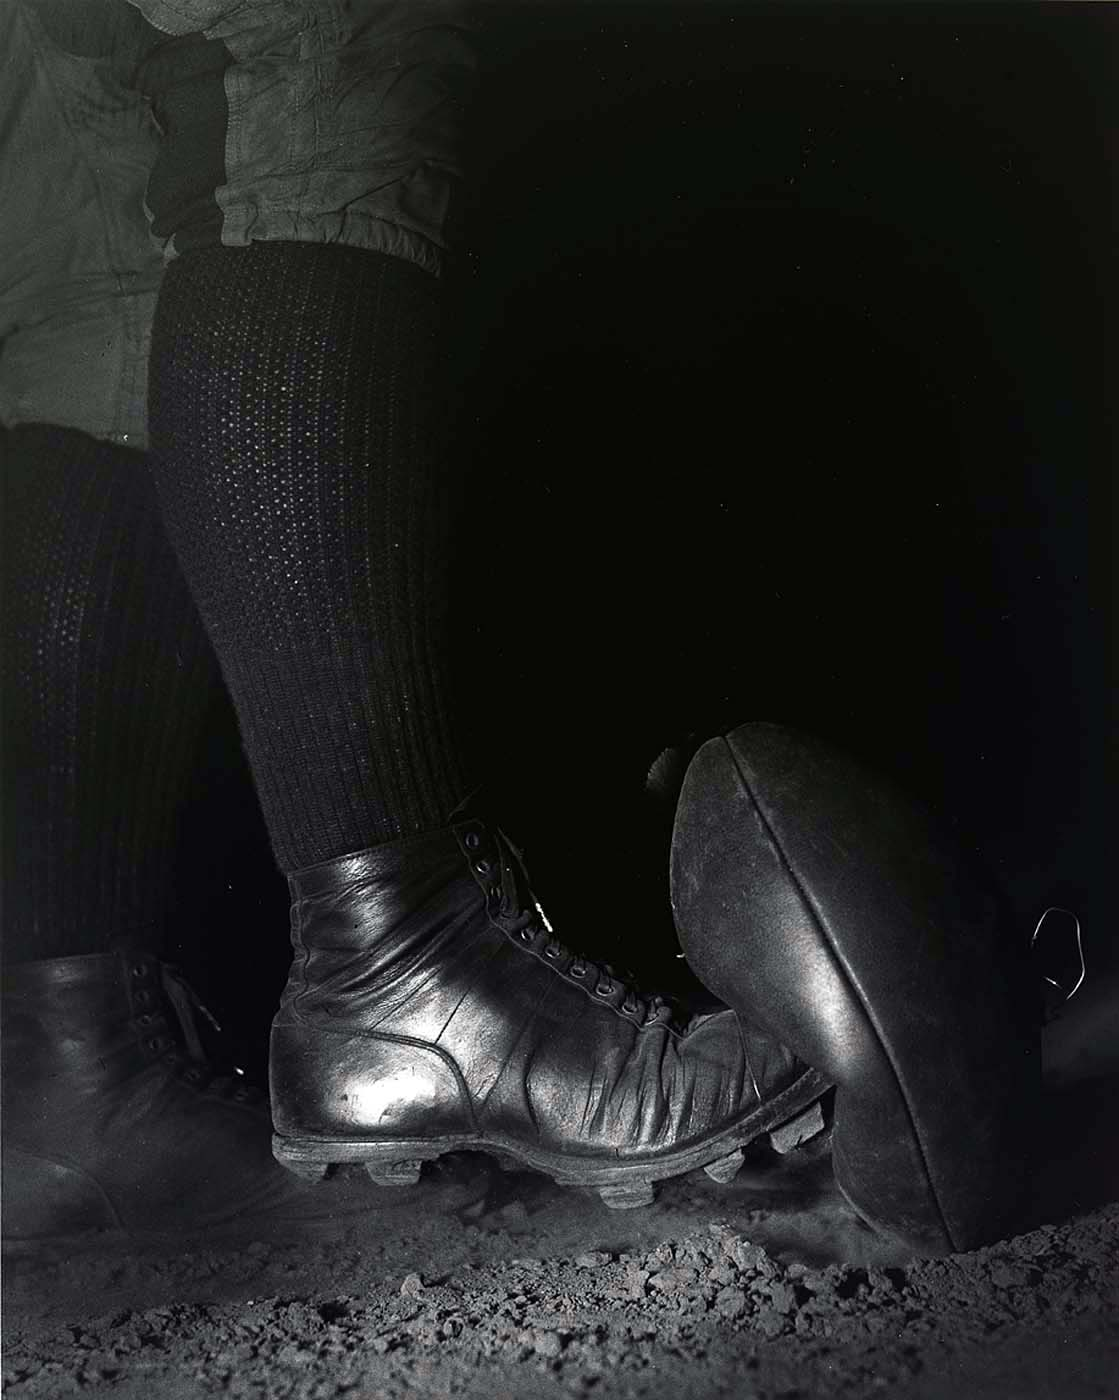 """Football Kick"" by Harold E. Edgerton, 1934"